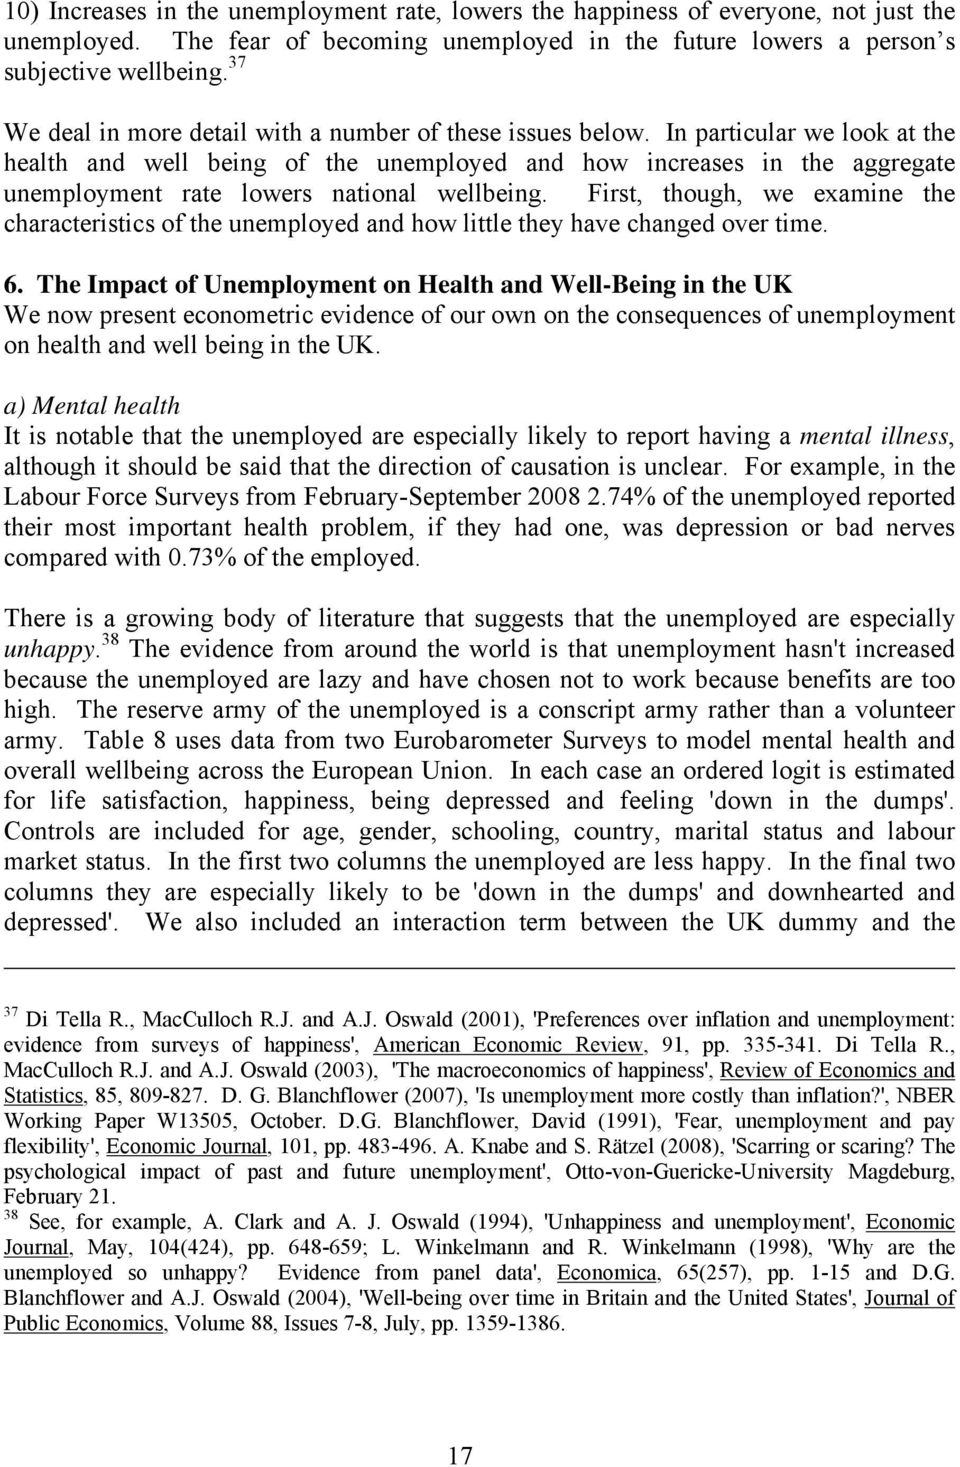 In particular we look at the health and well being of the unemployed and how increases in the aggregate unemployment rate lowers national wellbeing.